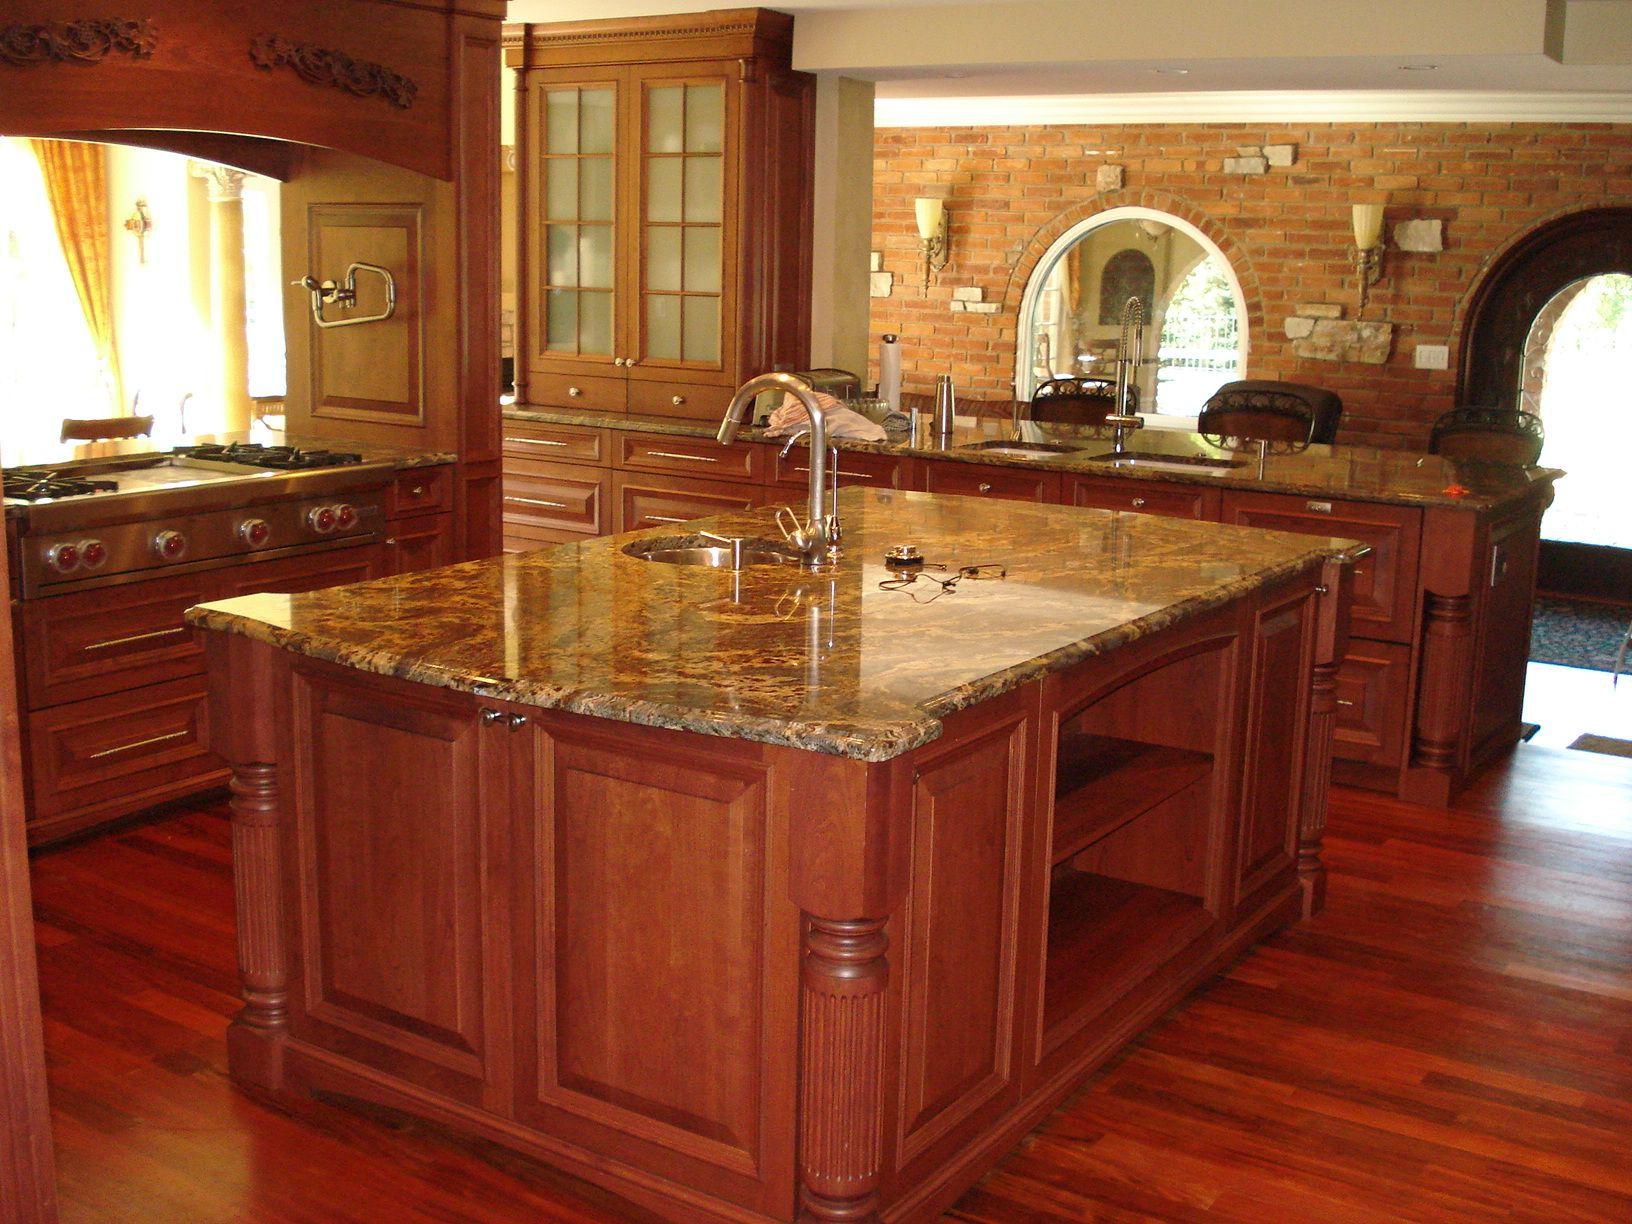 Kitchen island with quartz top - Kitchen Quartz Countertops With Oak Cabinets Quartz Countertops With Cabinets Kitchen Island With Sink And